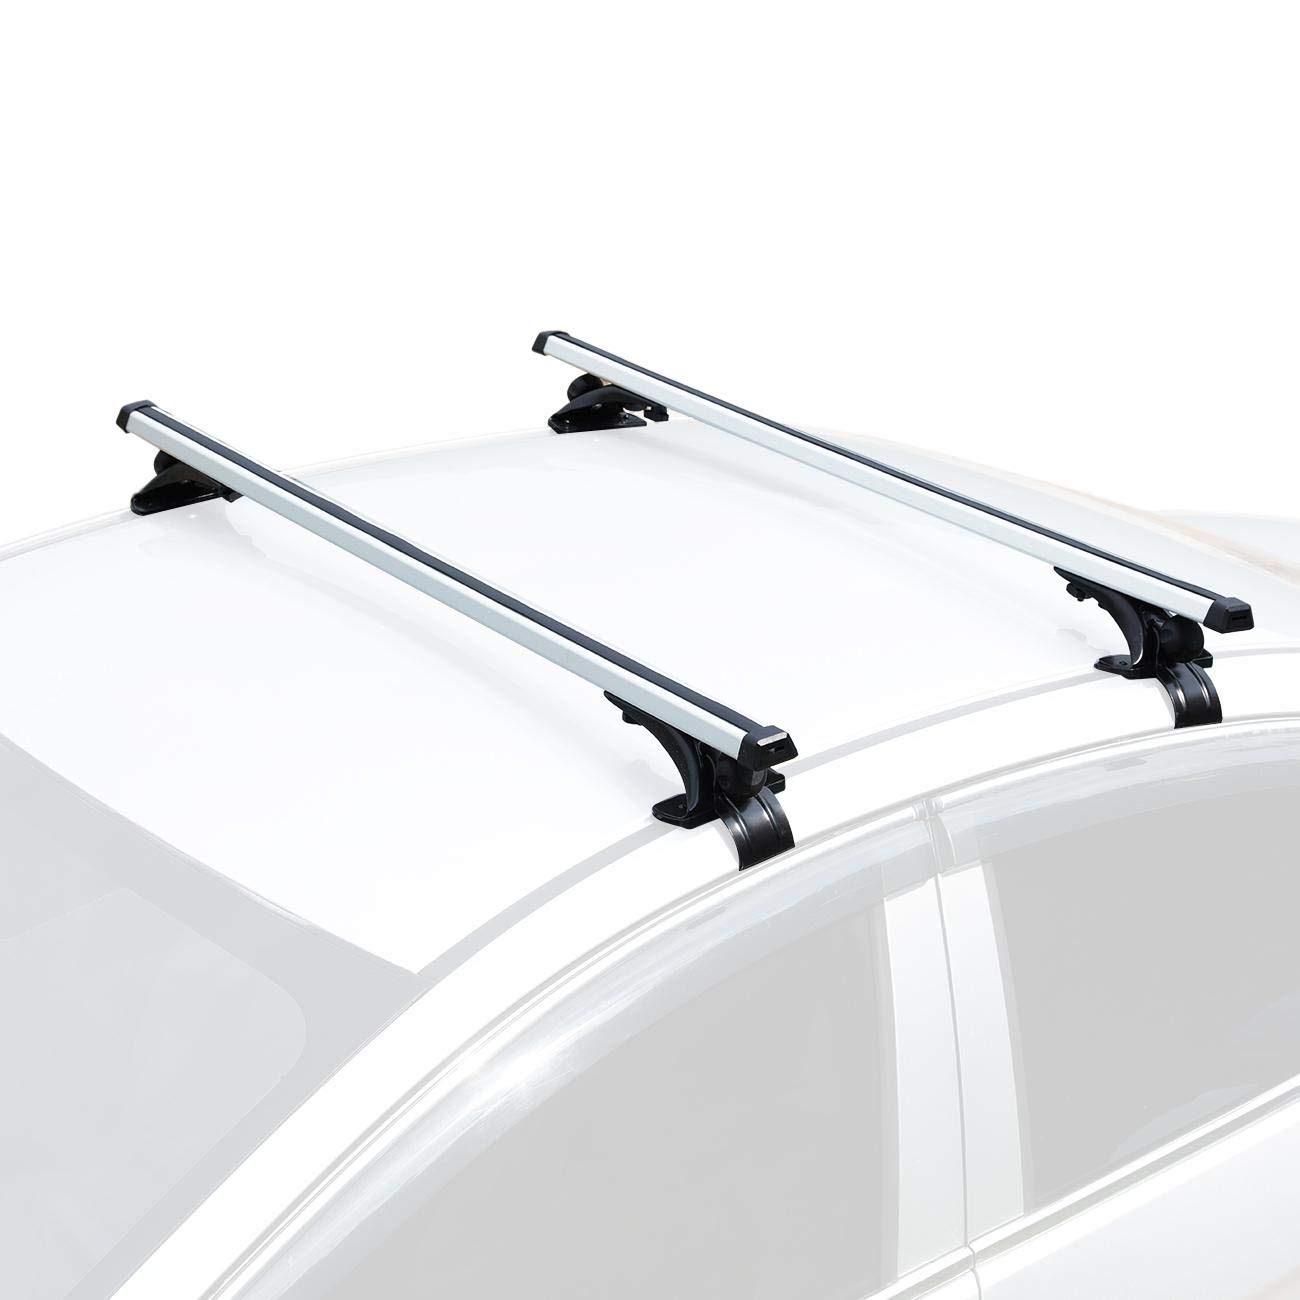 Kayak Roof Rack For Cars Without Rails >> Auxmart Universal Roof Rack Crossbars Width Less Than 48 Adjustable For Most Vehicle Wagon Car Without Roof Side Rail Pack Of 2 150lbs 68kg